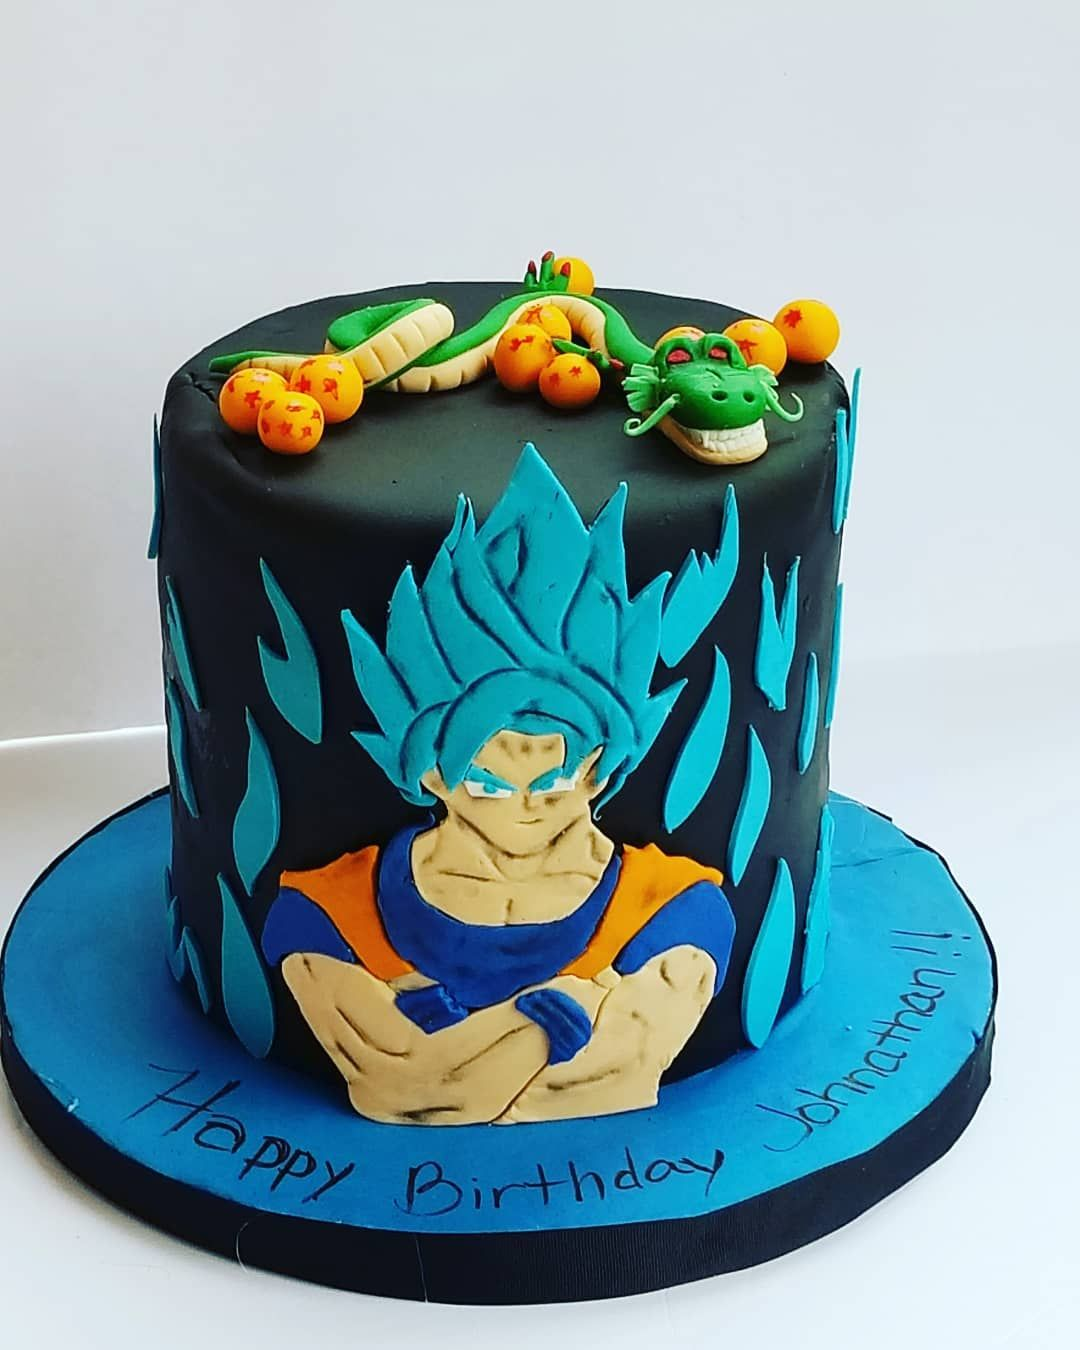 2d Goku Dragonball Z Cake With Images Dragonball Z Cake Boy